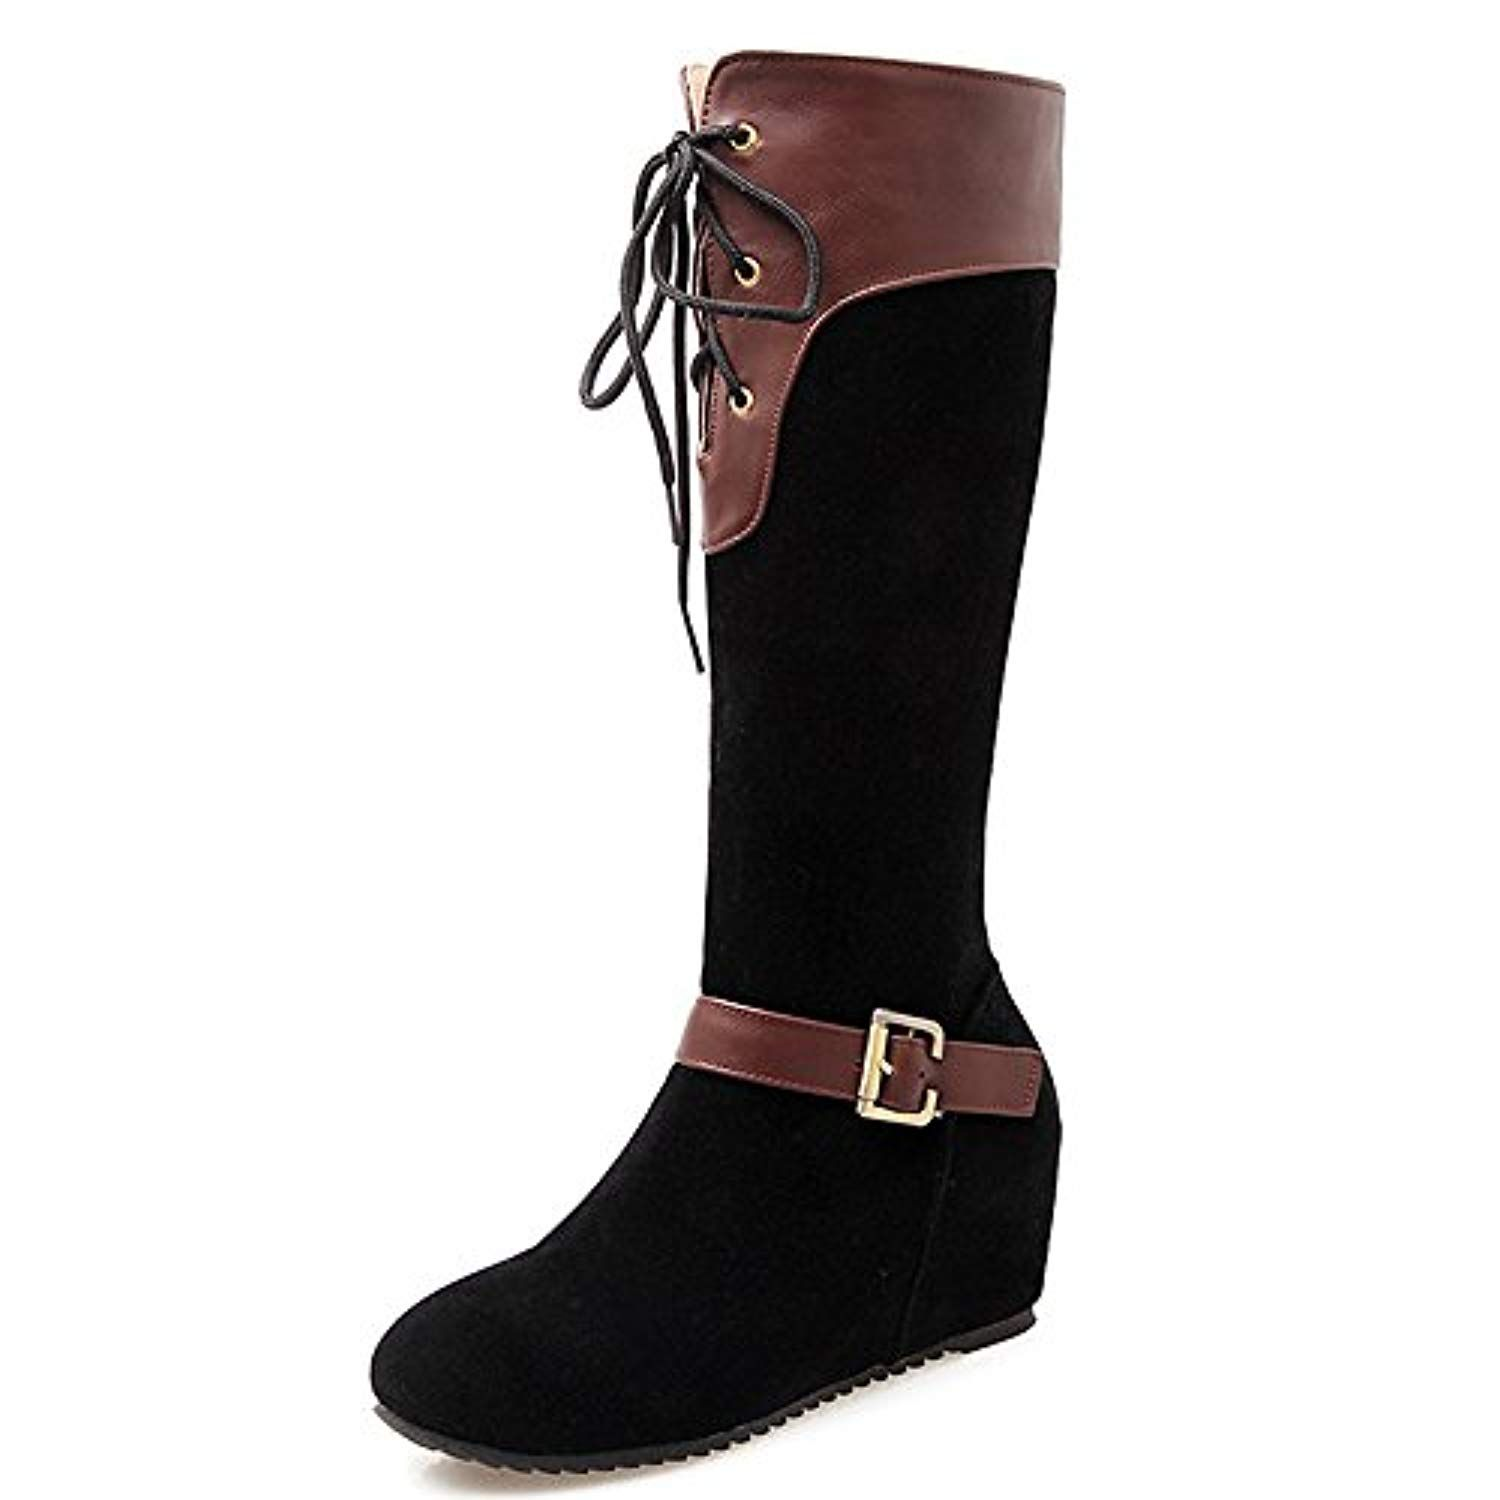 Nubuck Women S Wedge Heel Round Toe Lace Up Buckle Knee High Boot You Can Find Out More Details At The Link O Kitten Heel Boots Boots Womens Knee High Boots